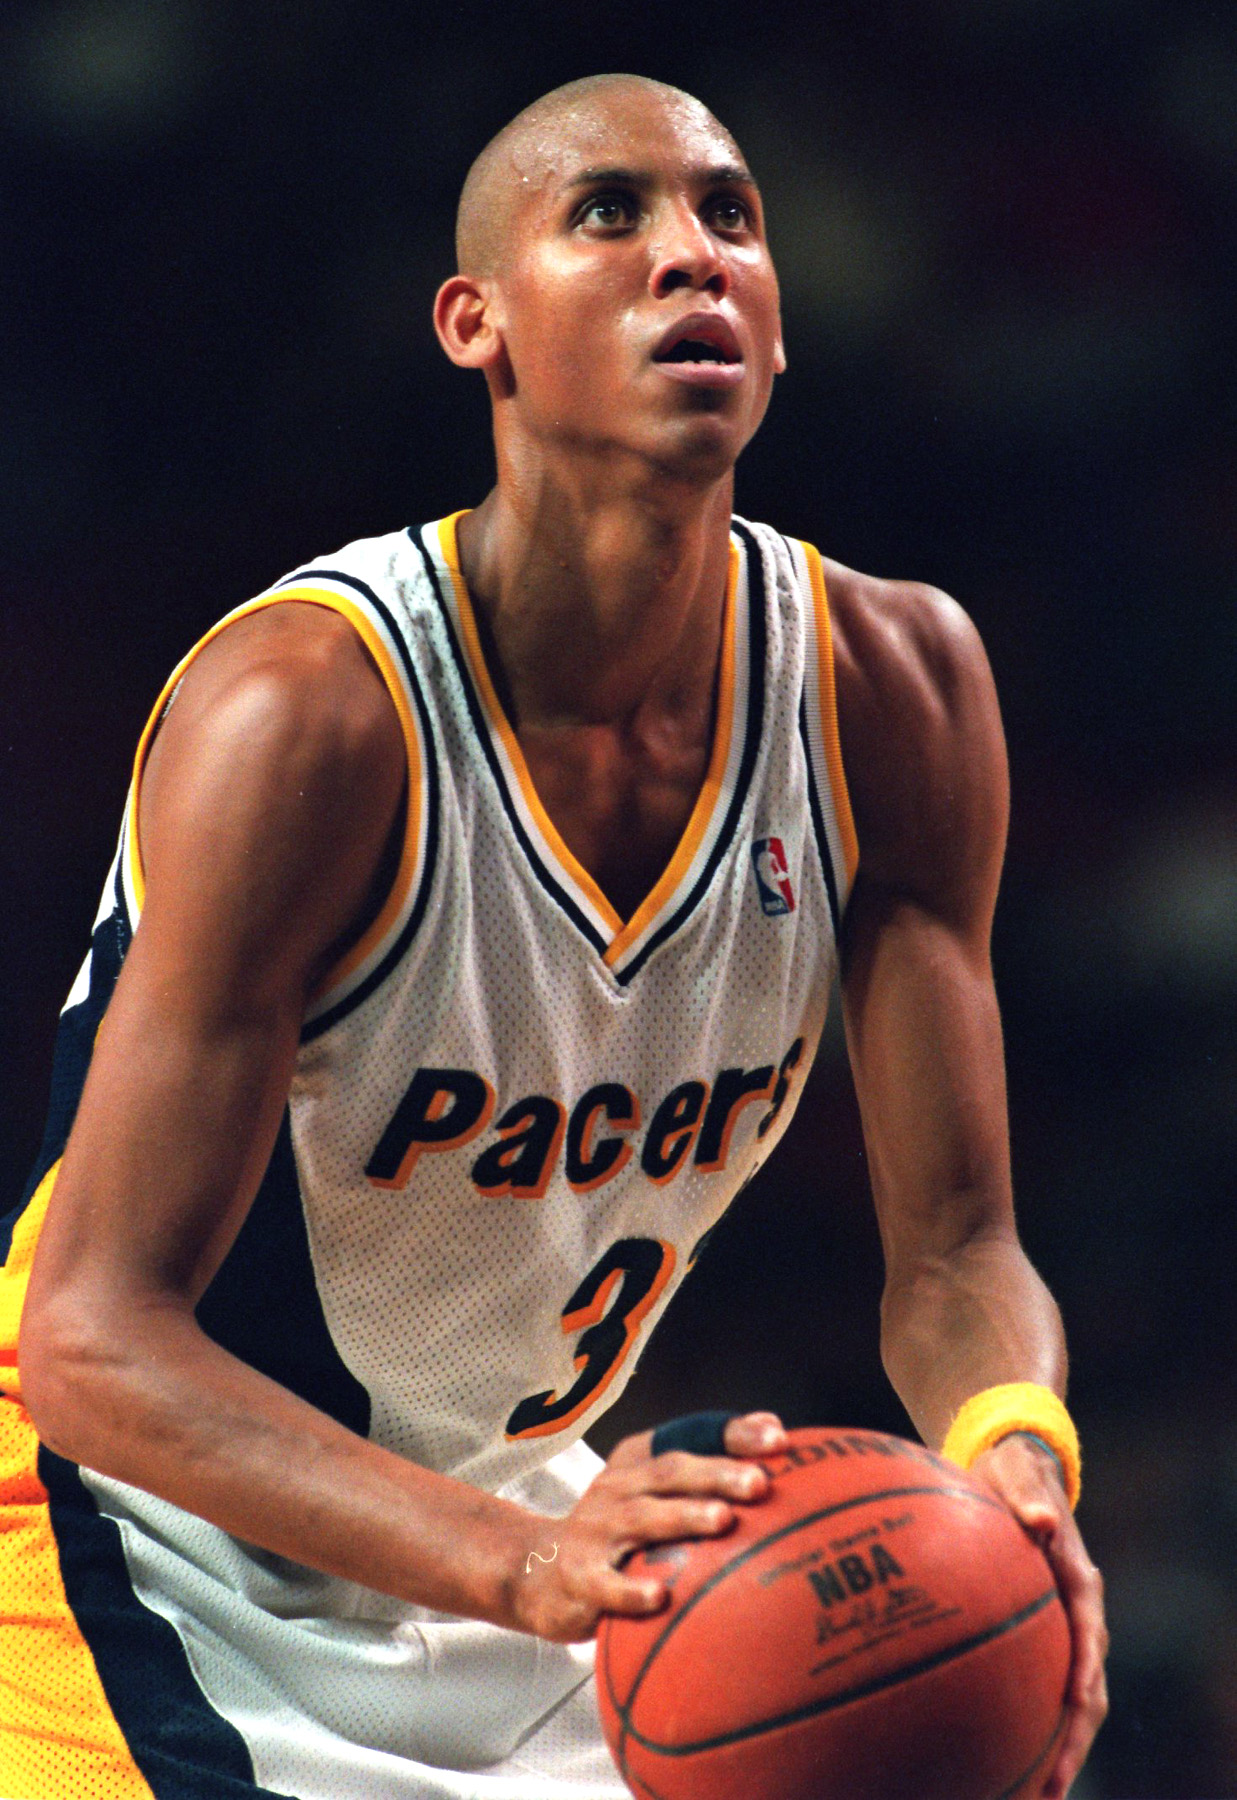 an introduction to the life of reggie miller It is designed for use by teachers of biology and the life sciences as a motivational introduction to the wonders of life and the amazing characteristics.